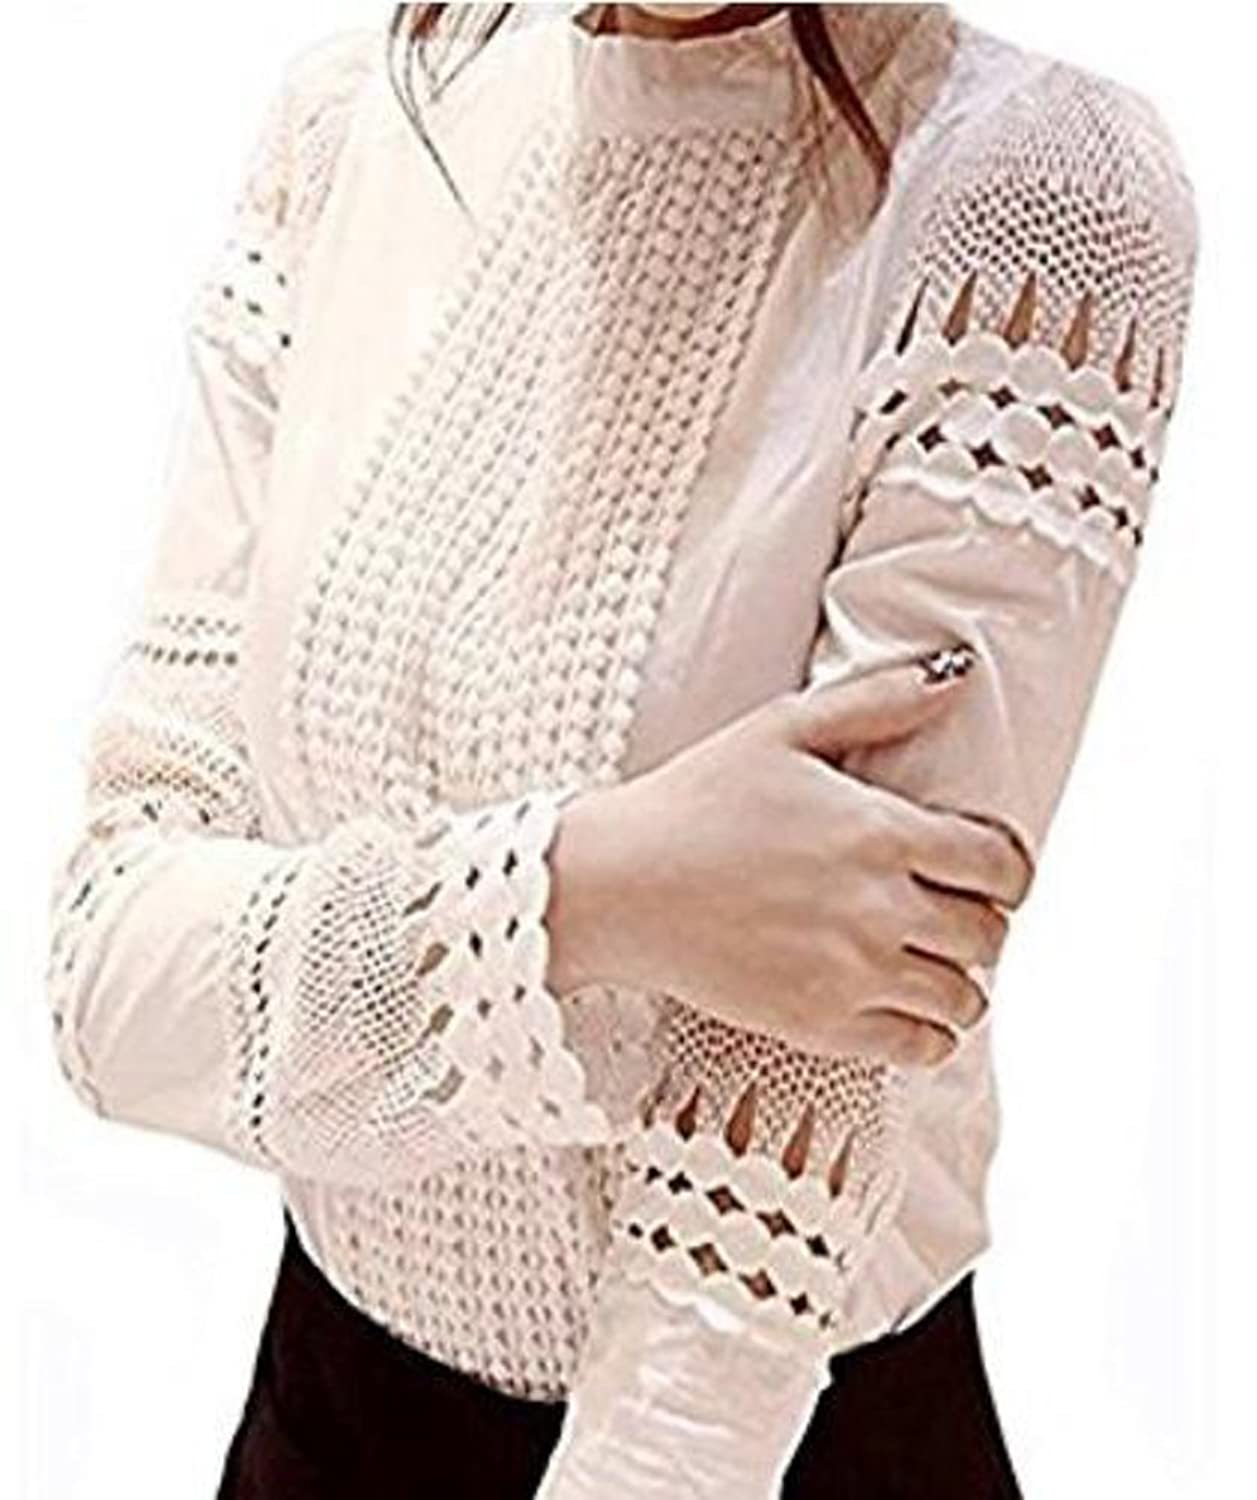 Cottagecore Clothing, Soft Aesthetic Lace Long Sleeve Elegant Blouse $14.99 AT vintagedancer.com